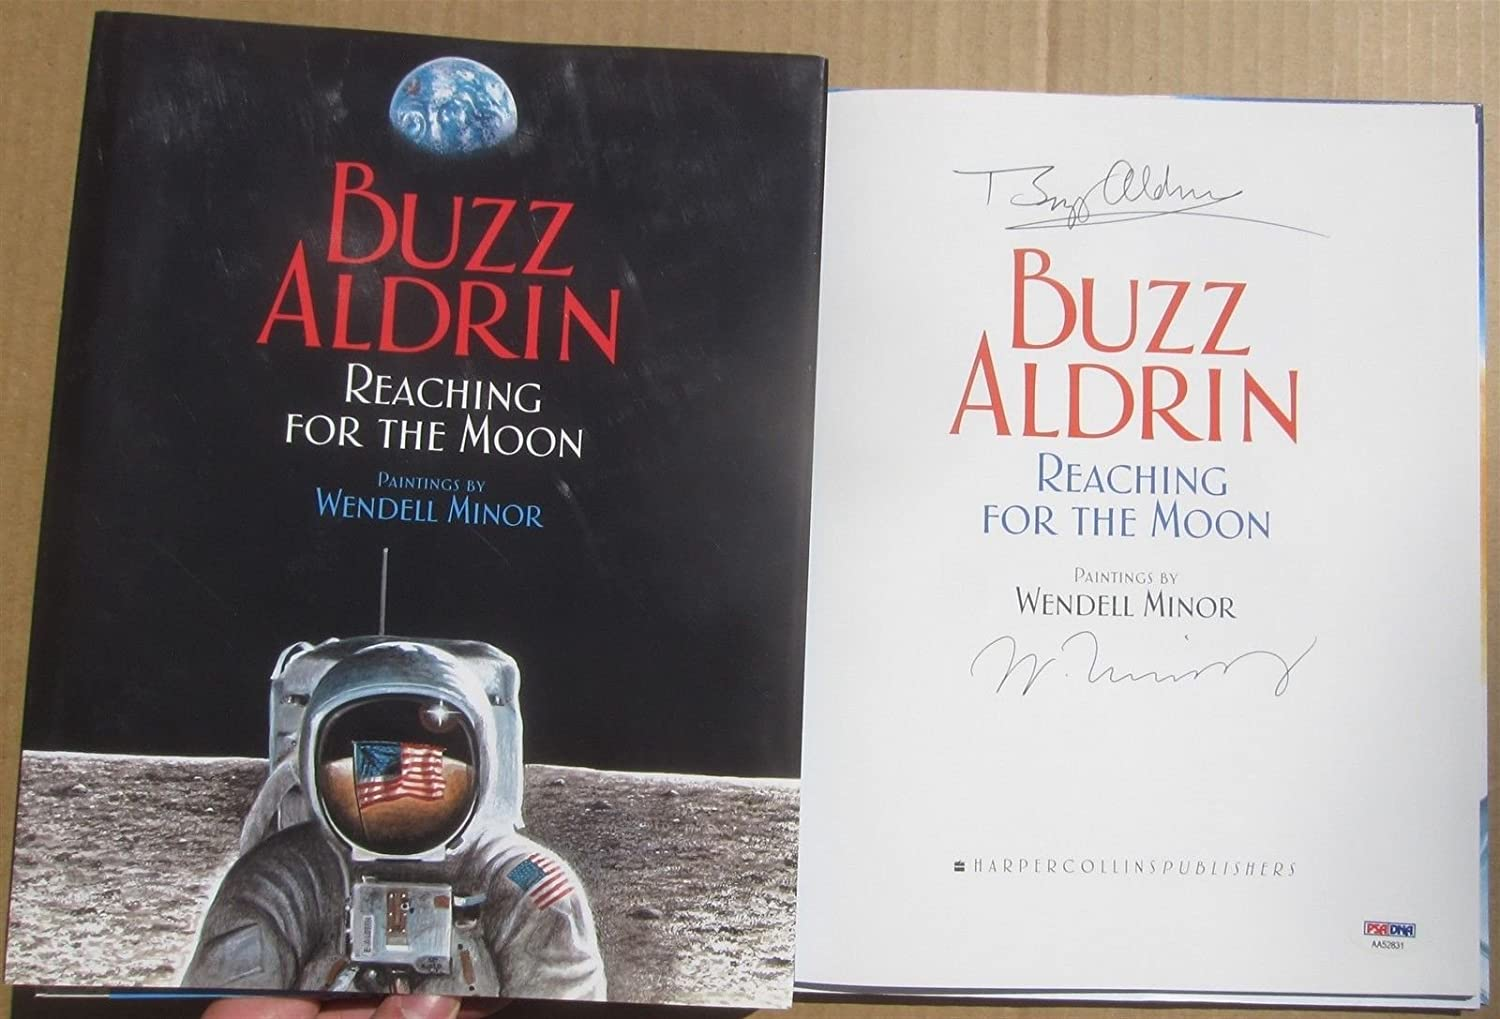 Buzz Aldrin signed Book Reaching for the Moon Apollo 11 Astronaut PSA/DNA